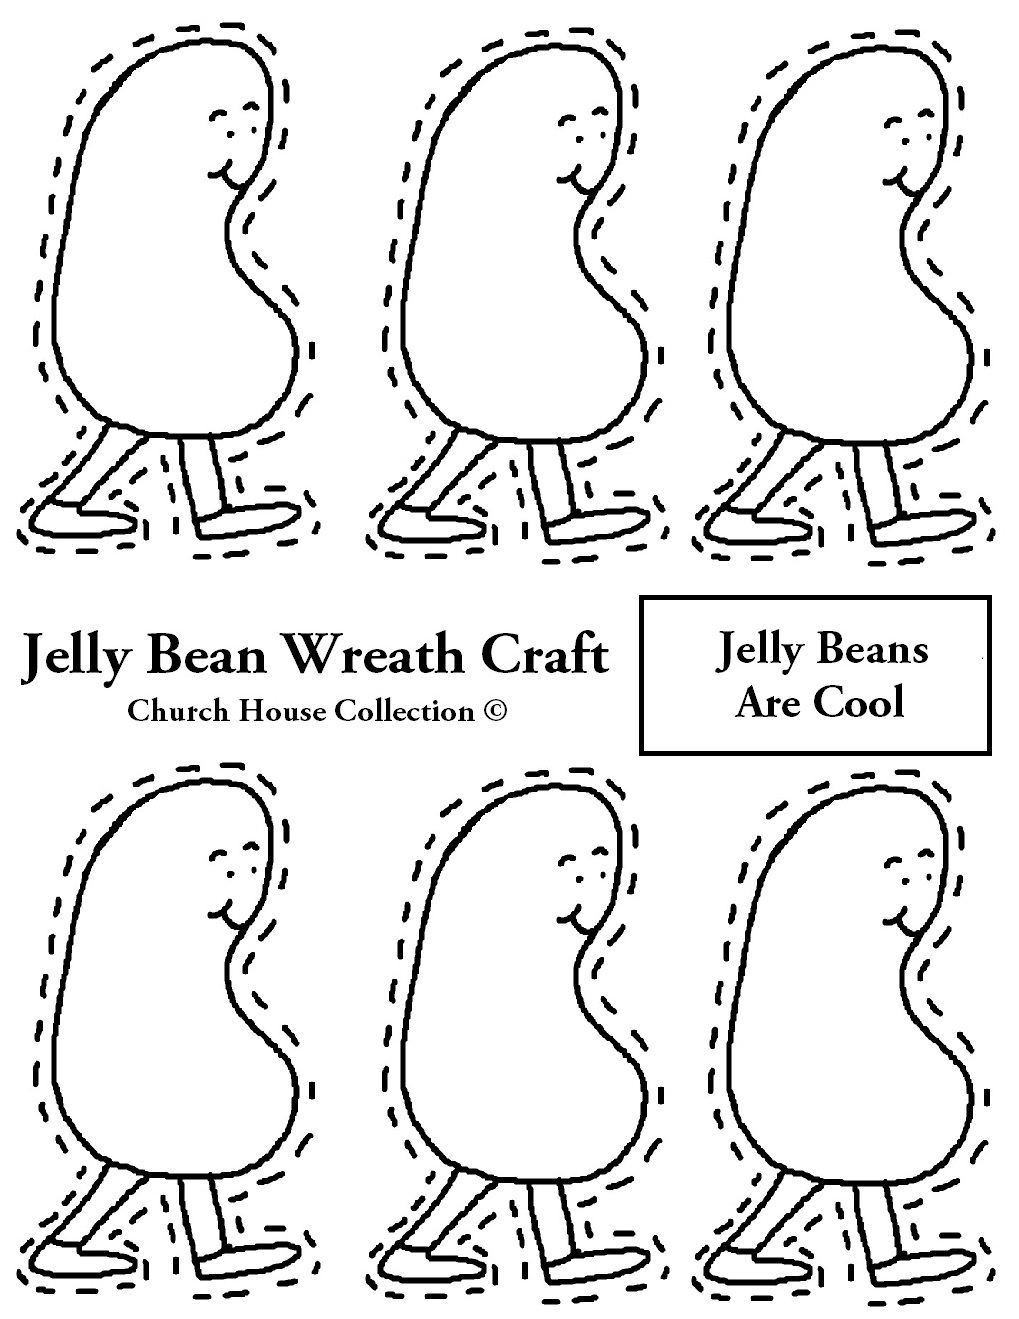 printable version jelly beans coloring page